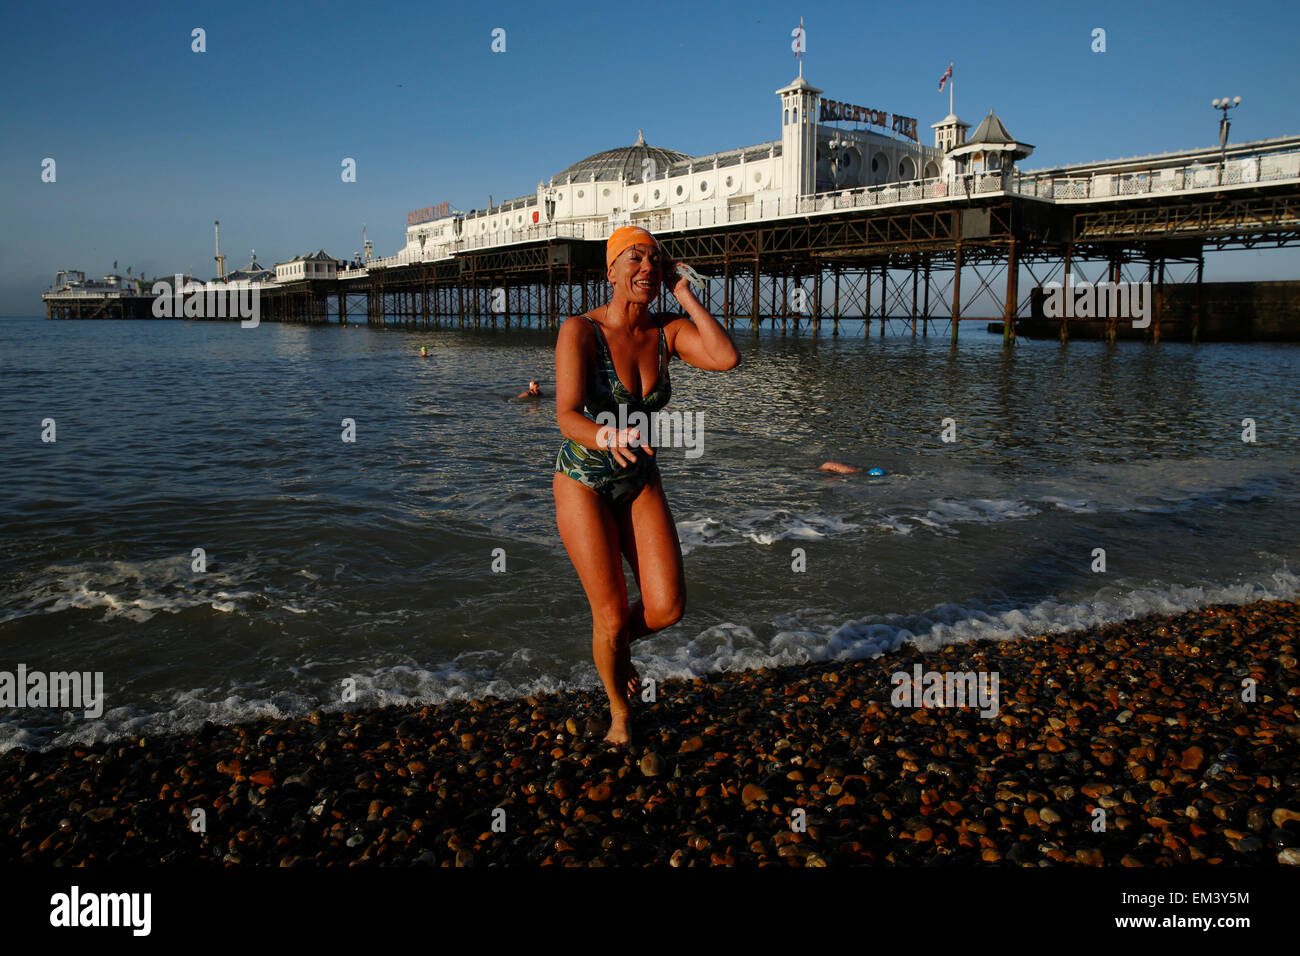 A member of Brighton Swimming Club gets out of the sea after a morning swim Brighton Pier in East Sussex Britain - Stock Image